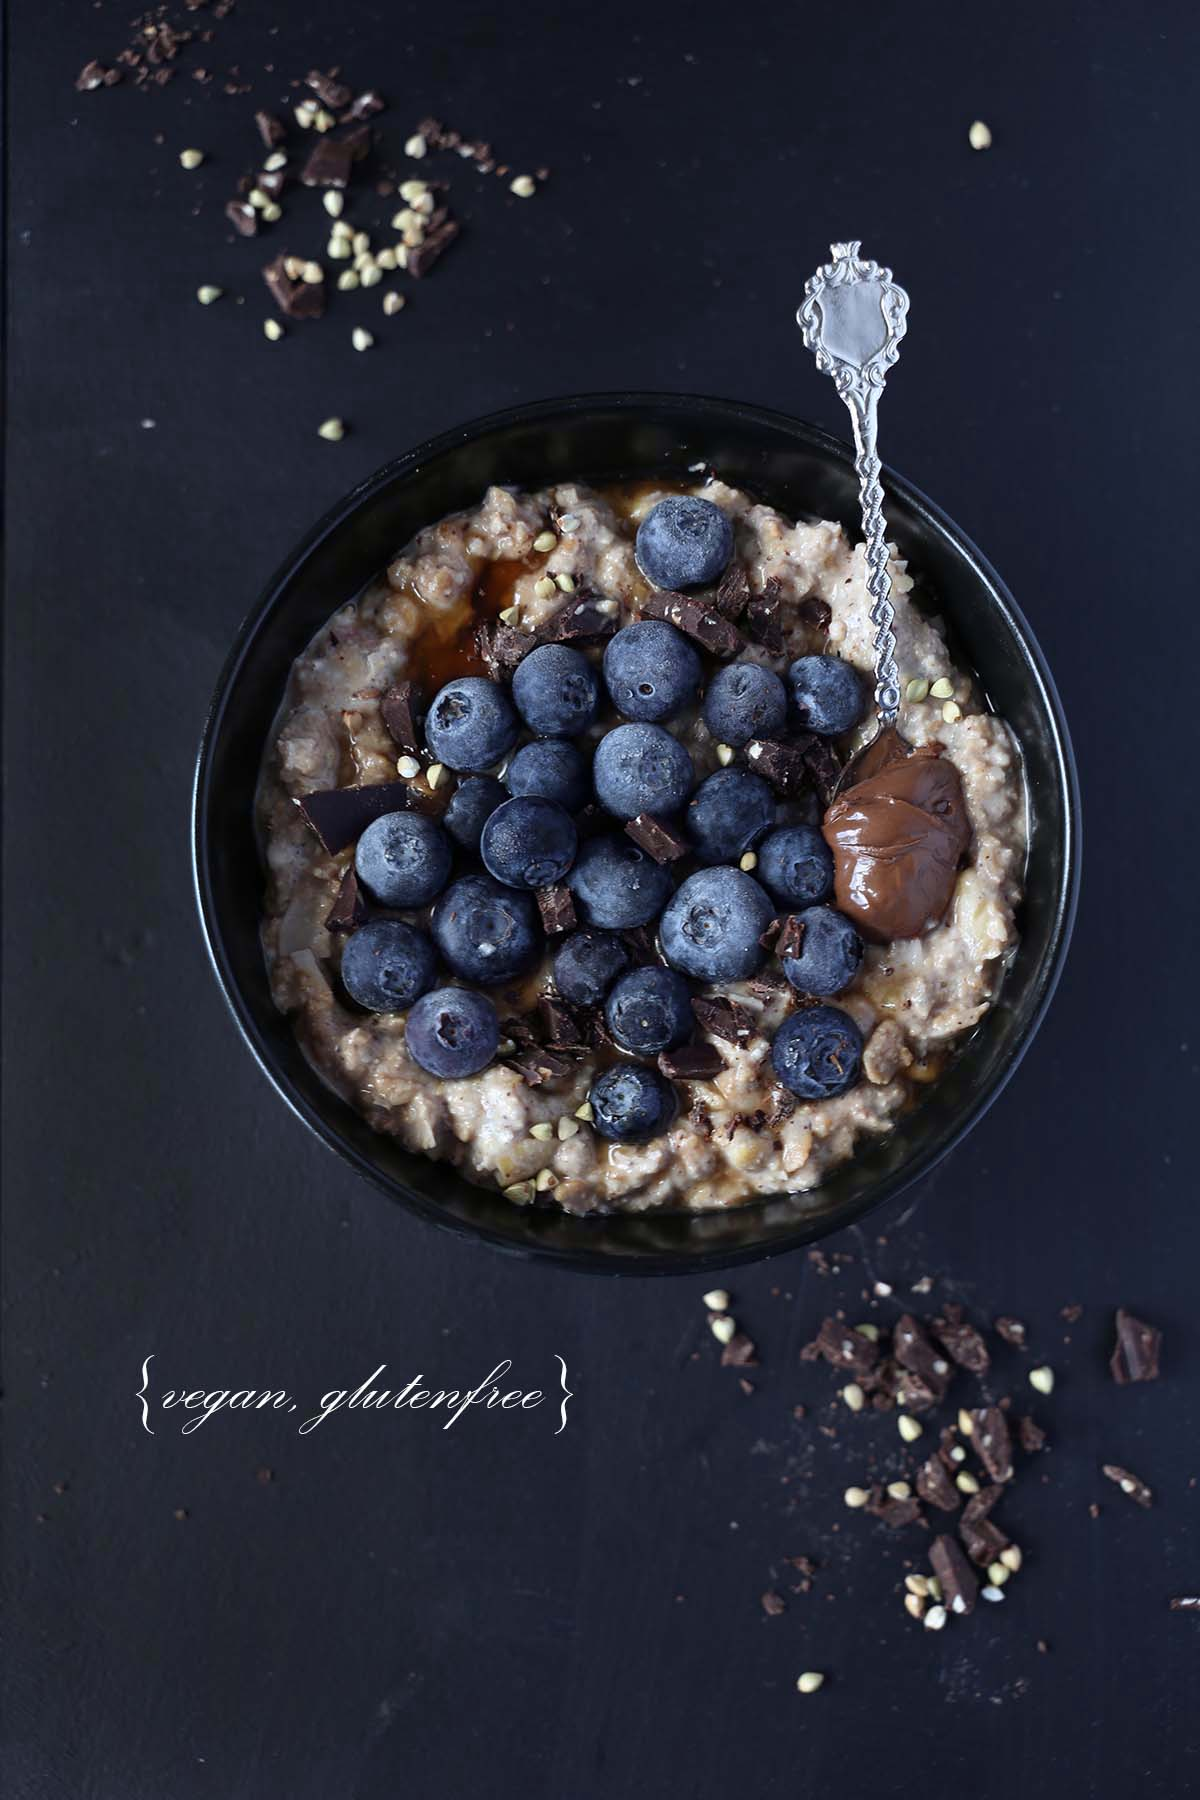 Super creamy chocolate oatmeal {vg, gf, sugarfree}